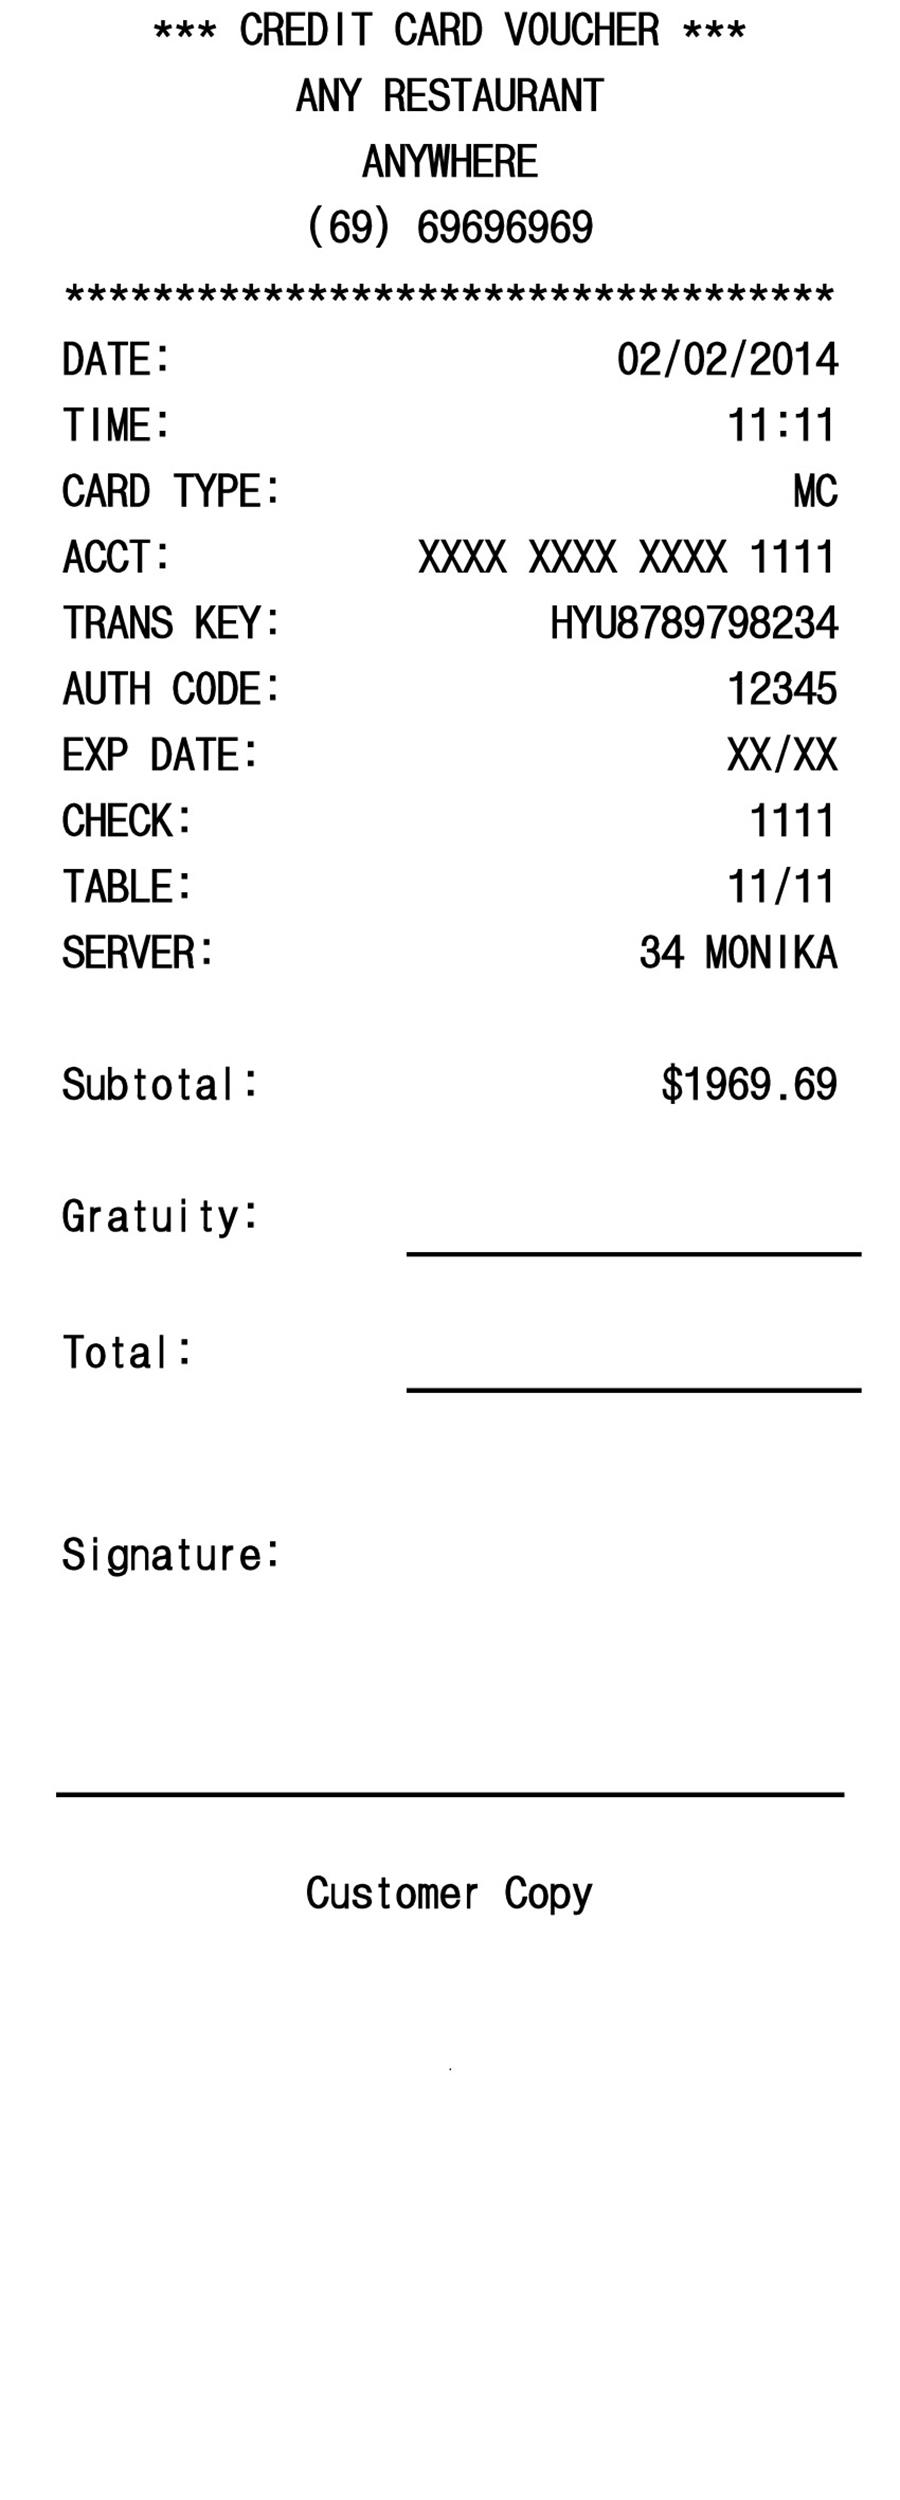 printable restaurant receipt template word - Payment Receipt Template